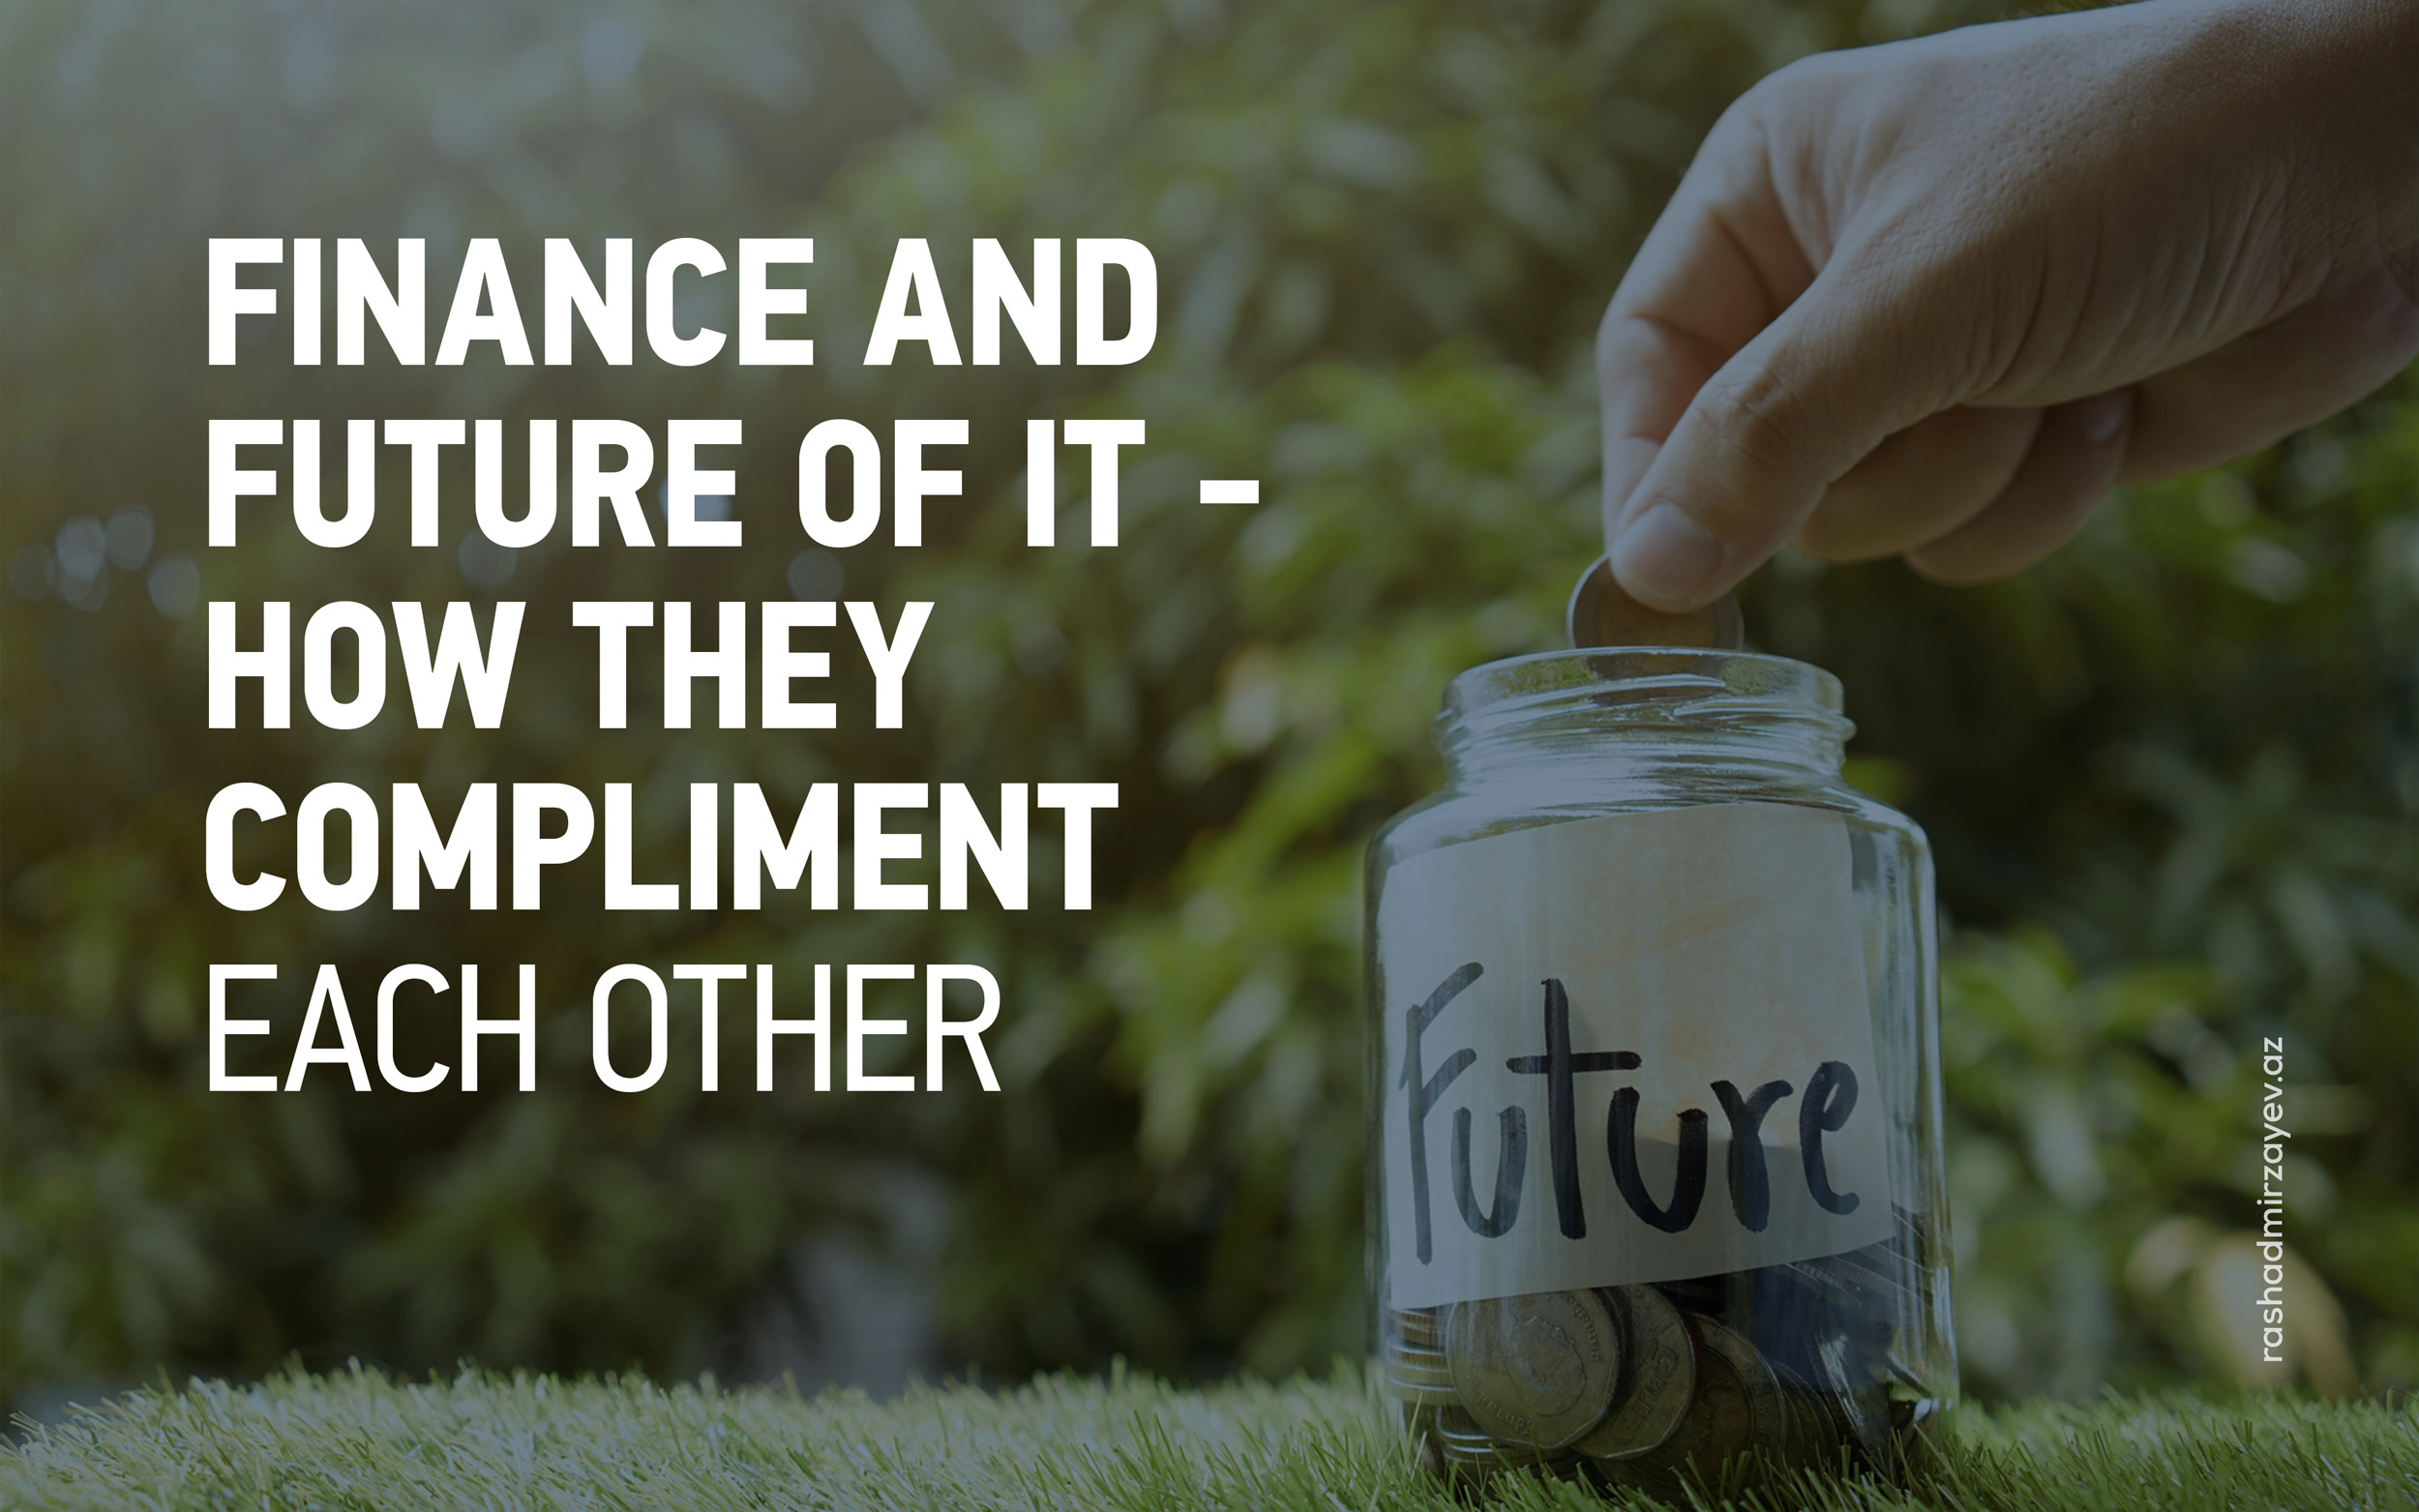 FINANCE AND FUTURE OF IT- HOW THEY COMPLEMENT EACH OTHER